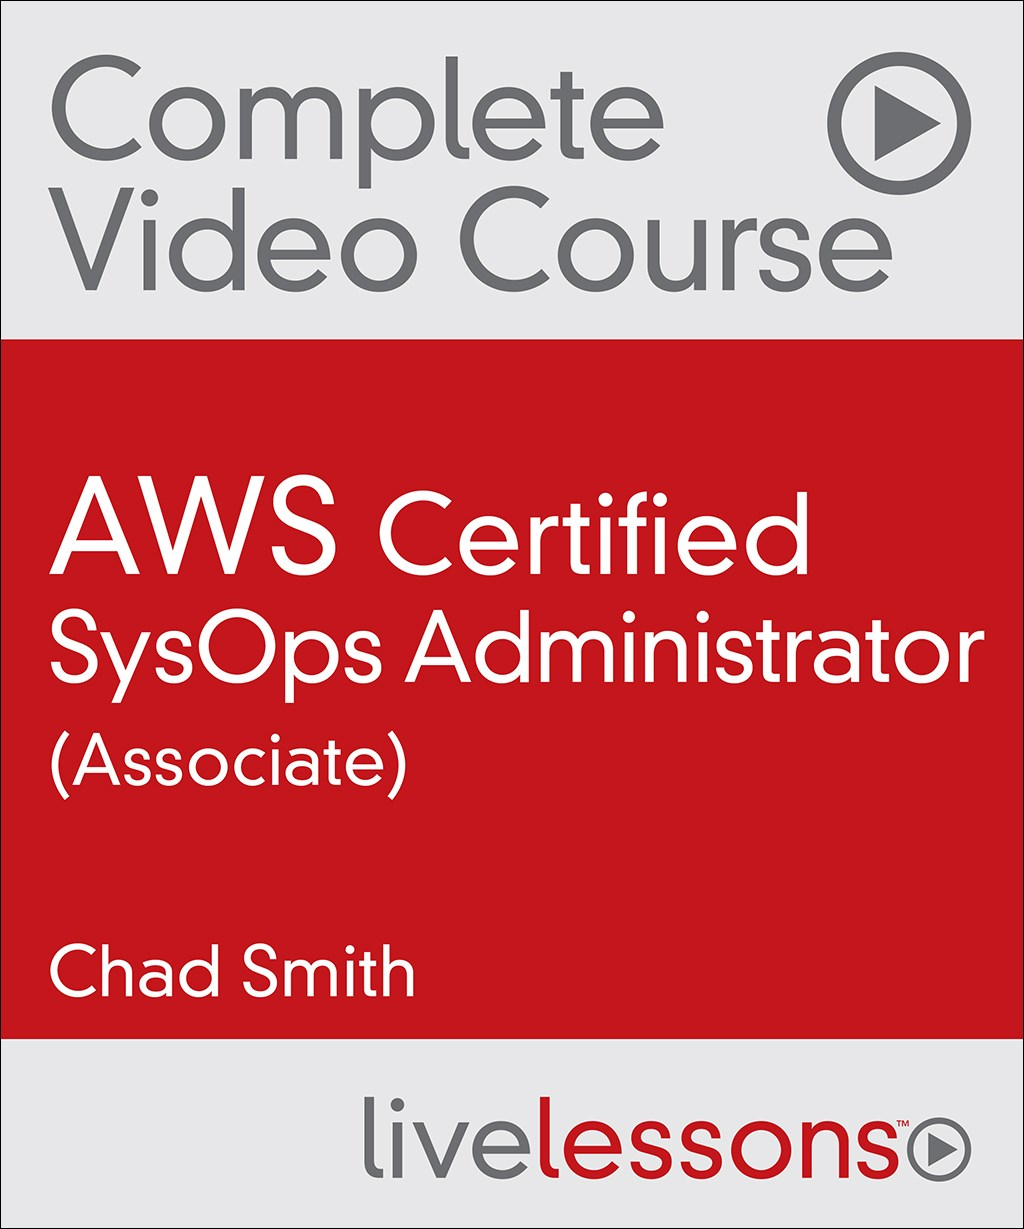 AWS Certified SysOps Administrator (Associate) Complete Video Course and Practice Test